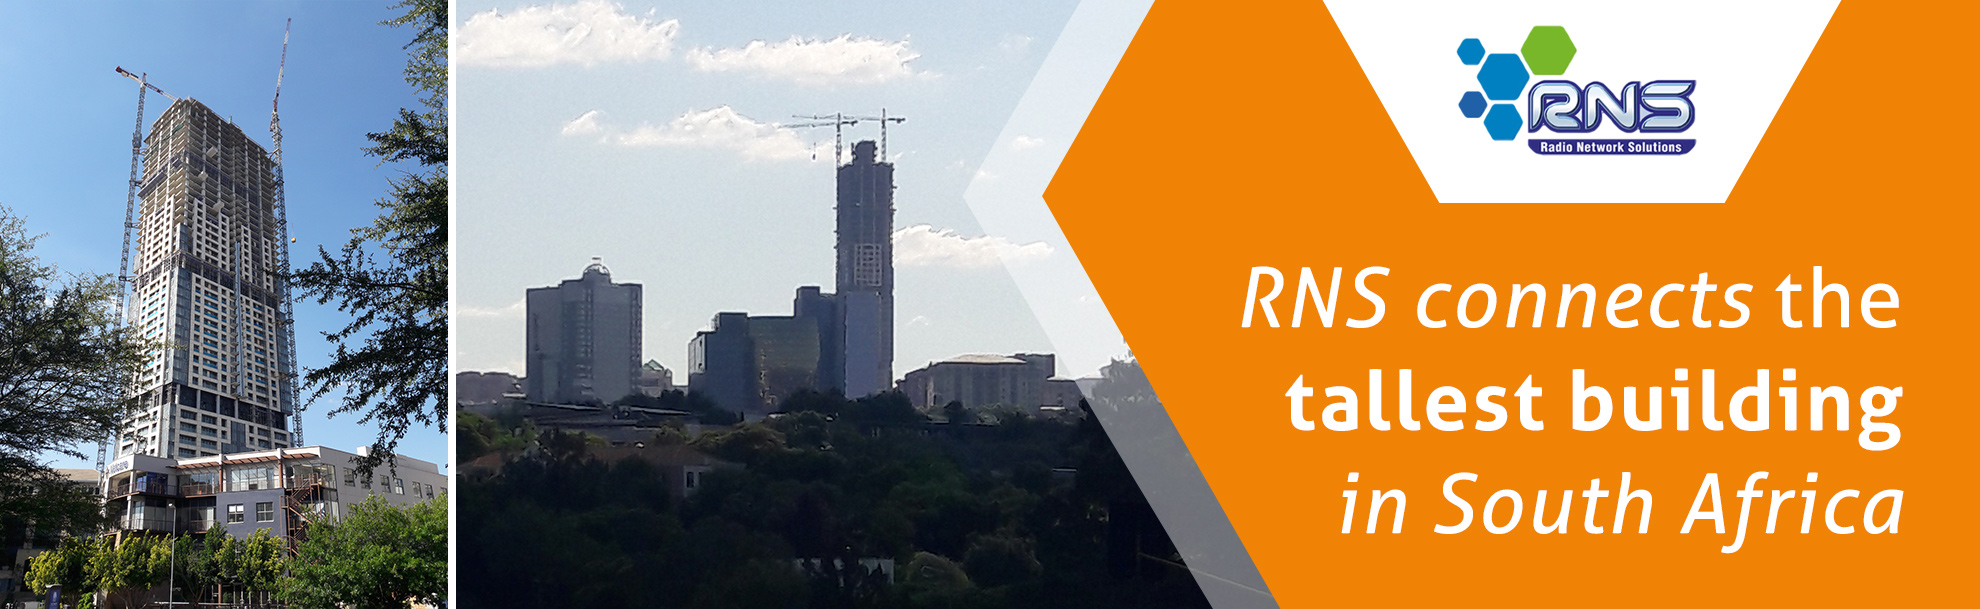 RNS connects the tallest building in South Africa